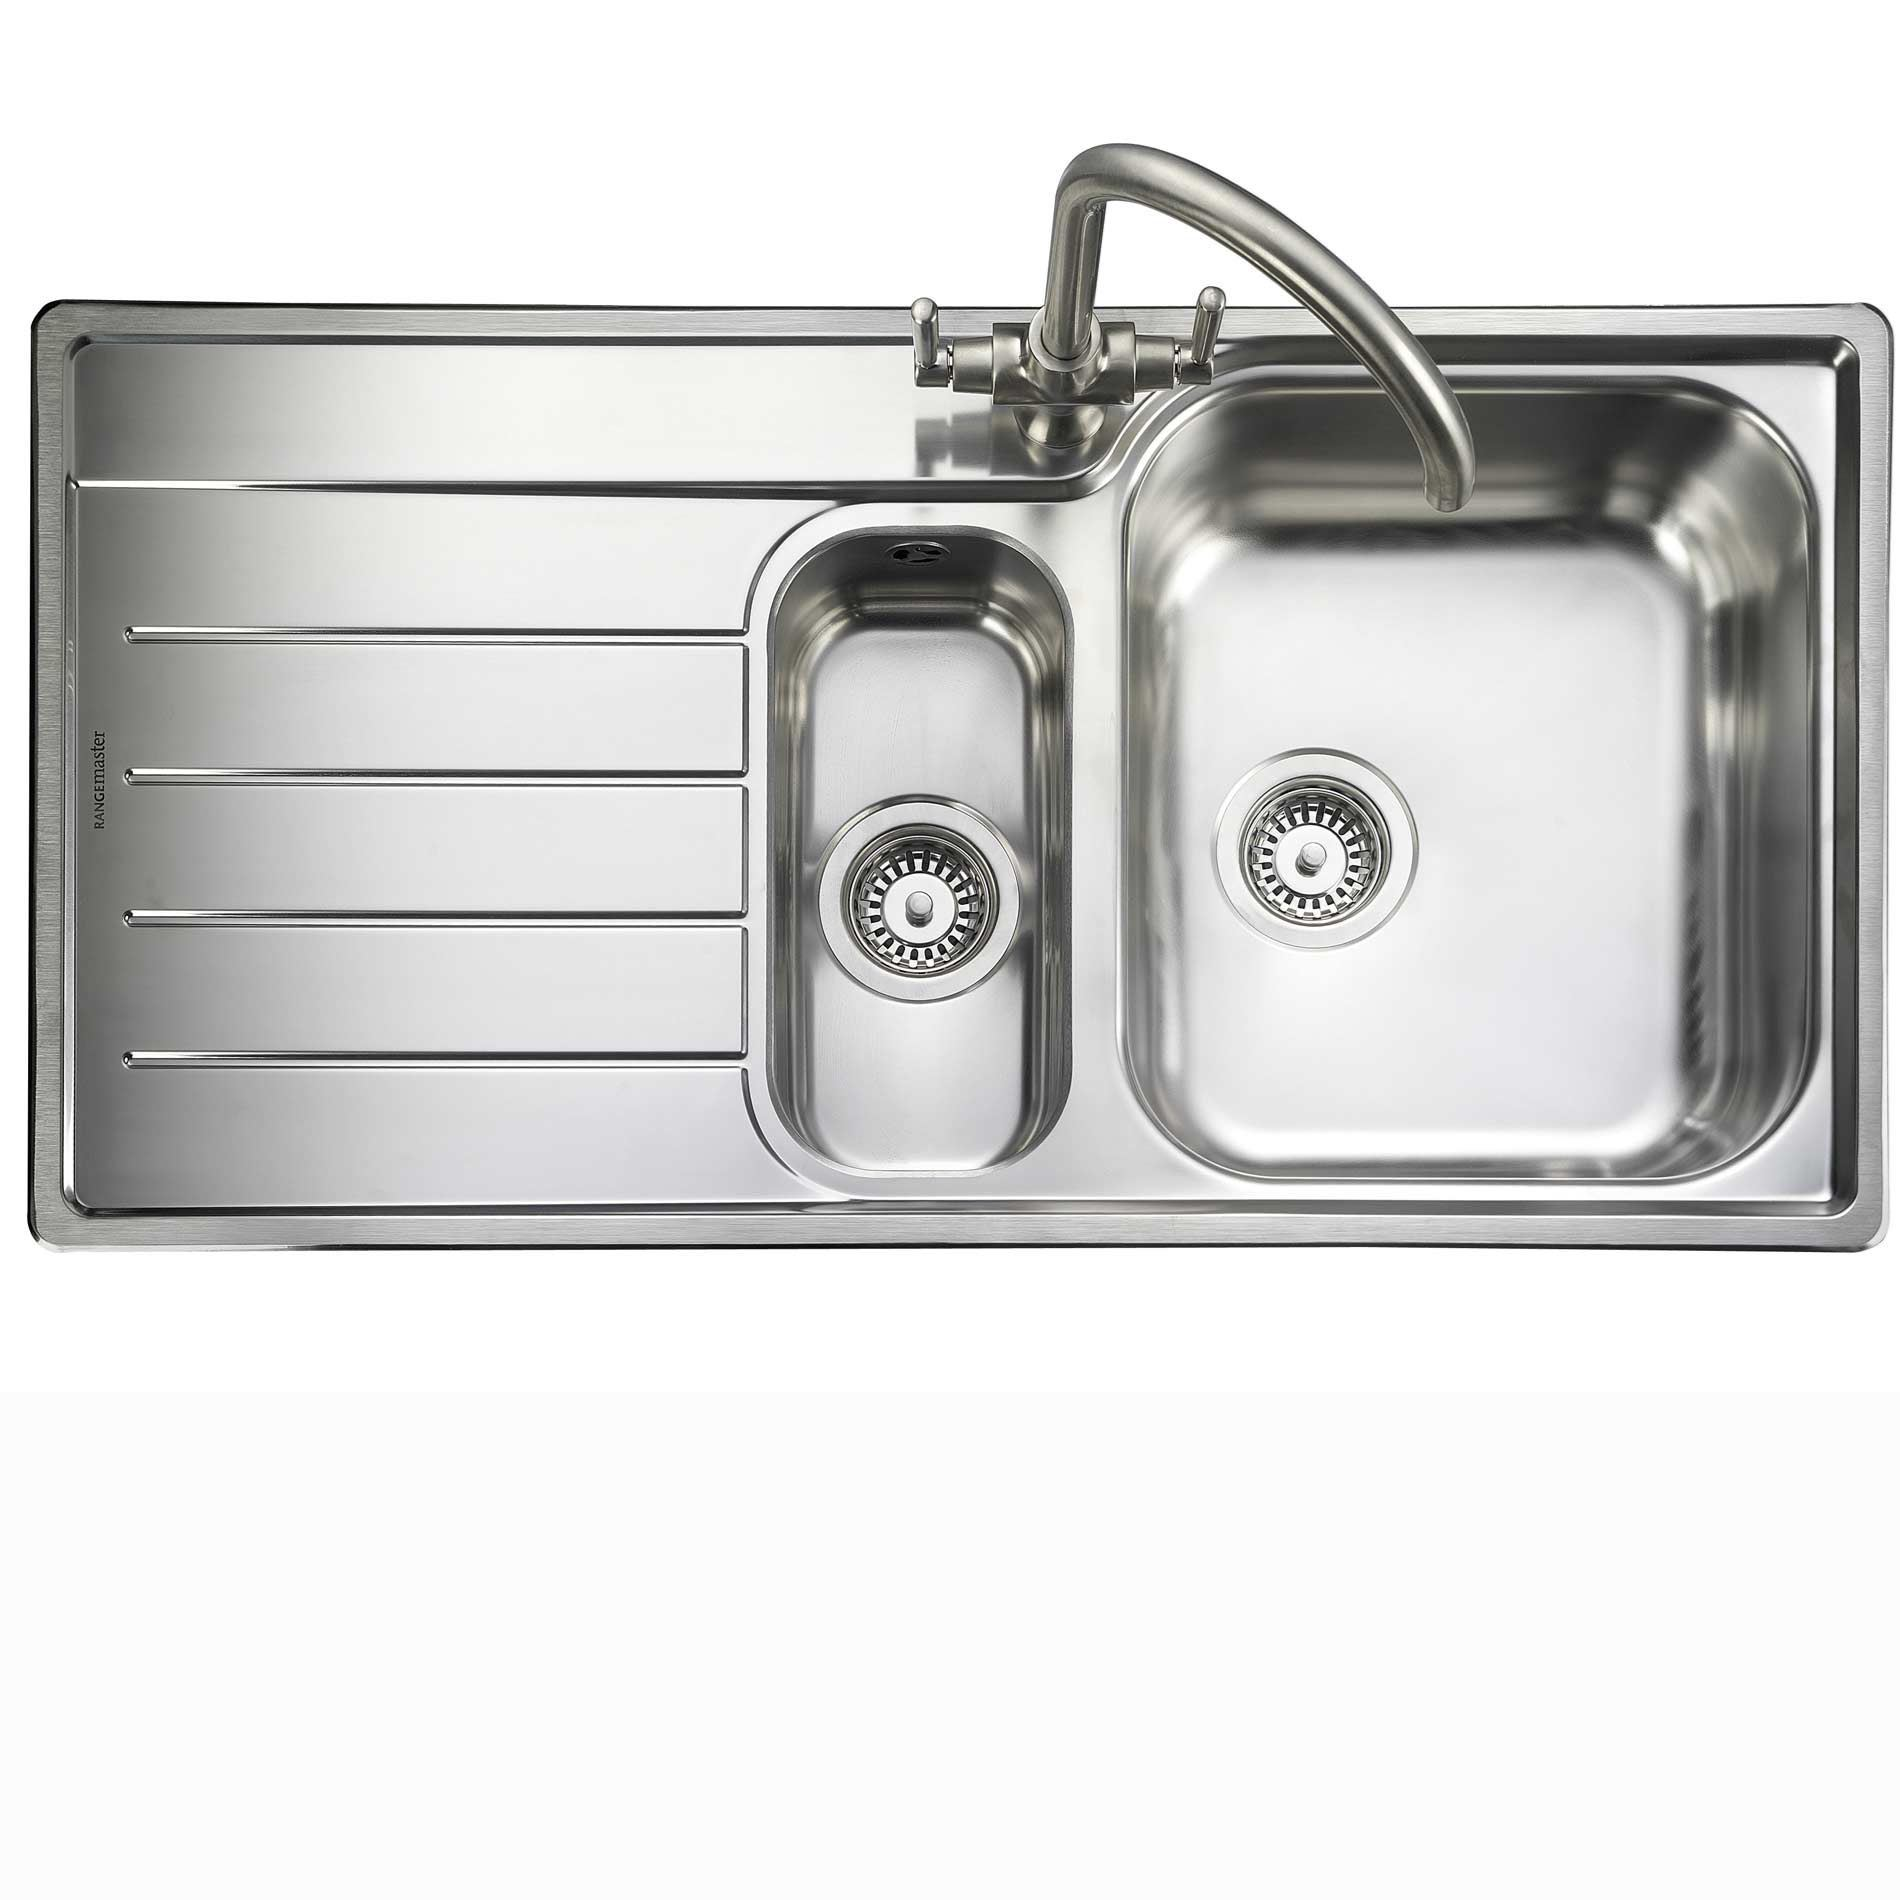 Rangemaster: Oakland OL9852 Stainless Steel Sink - Kitchen